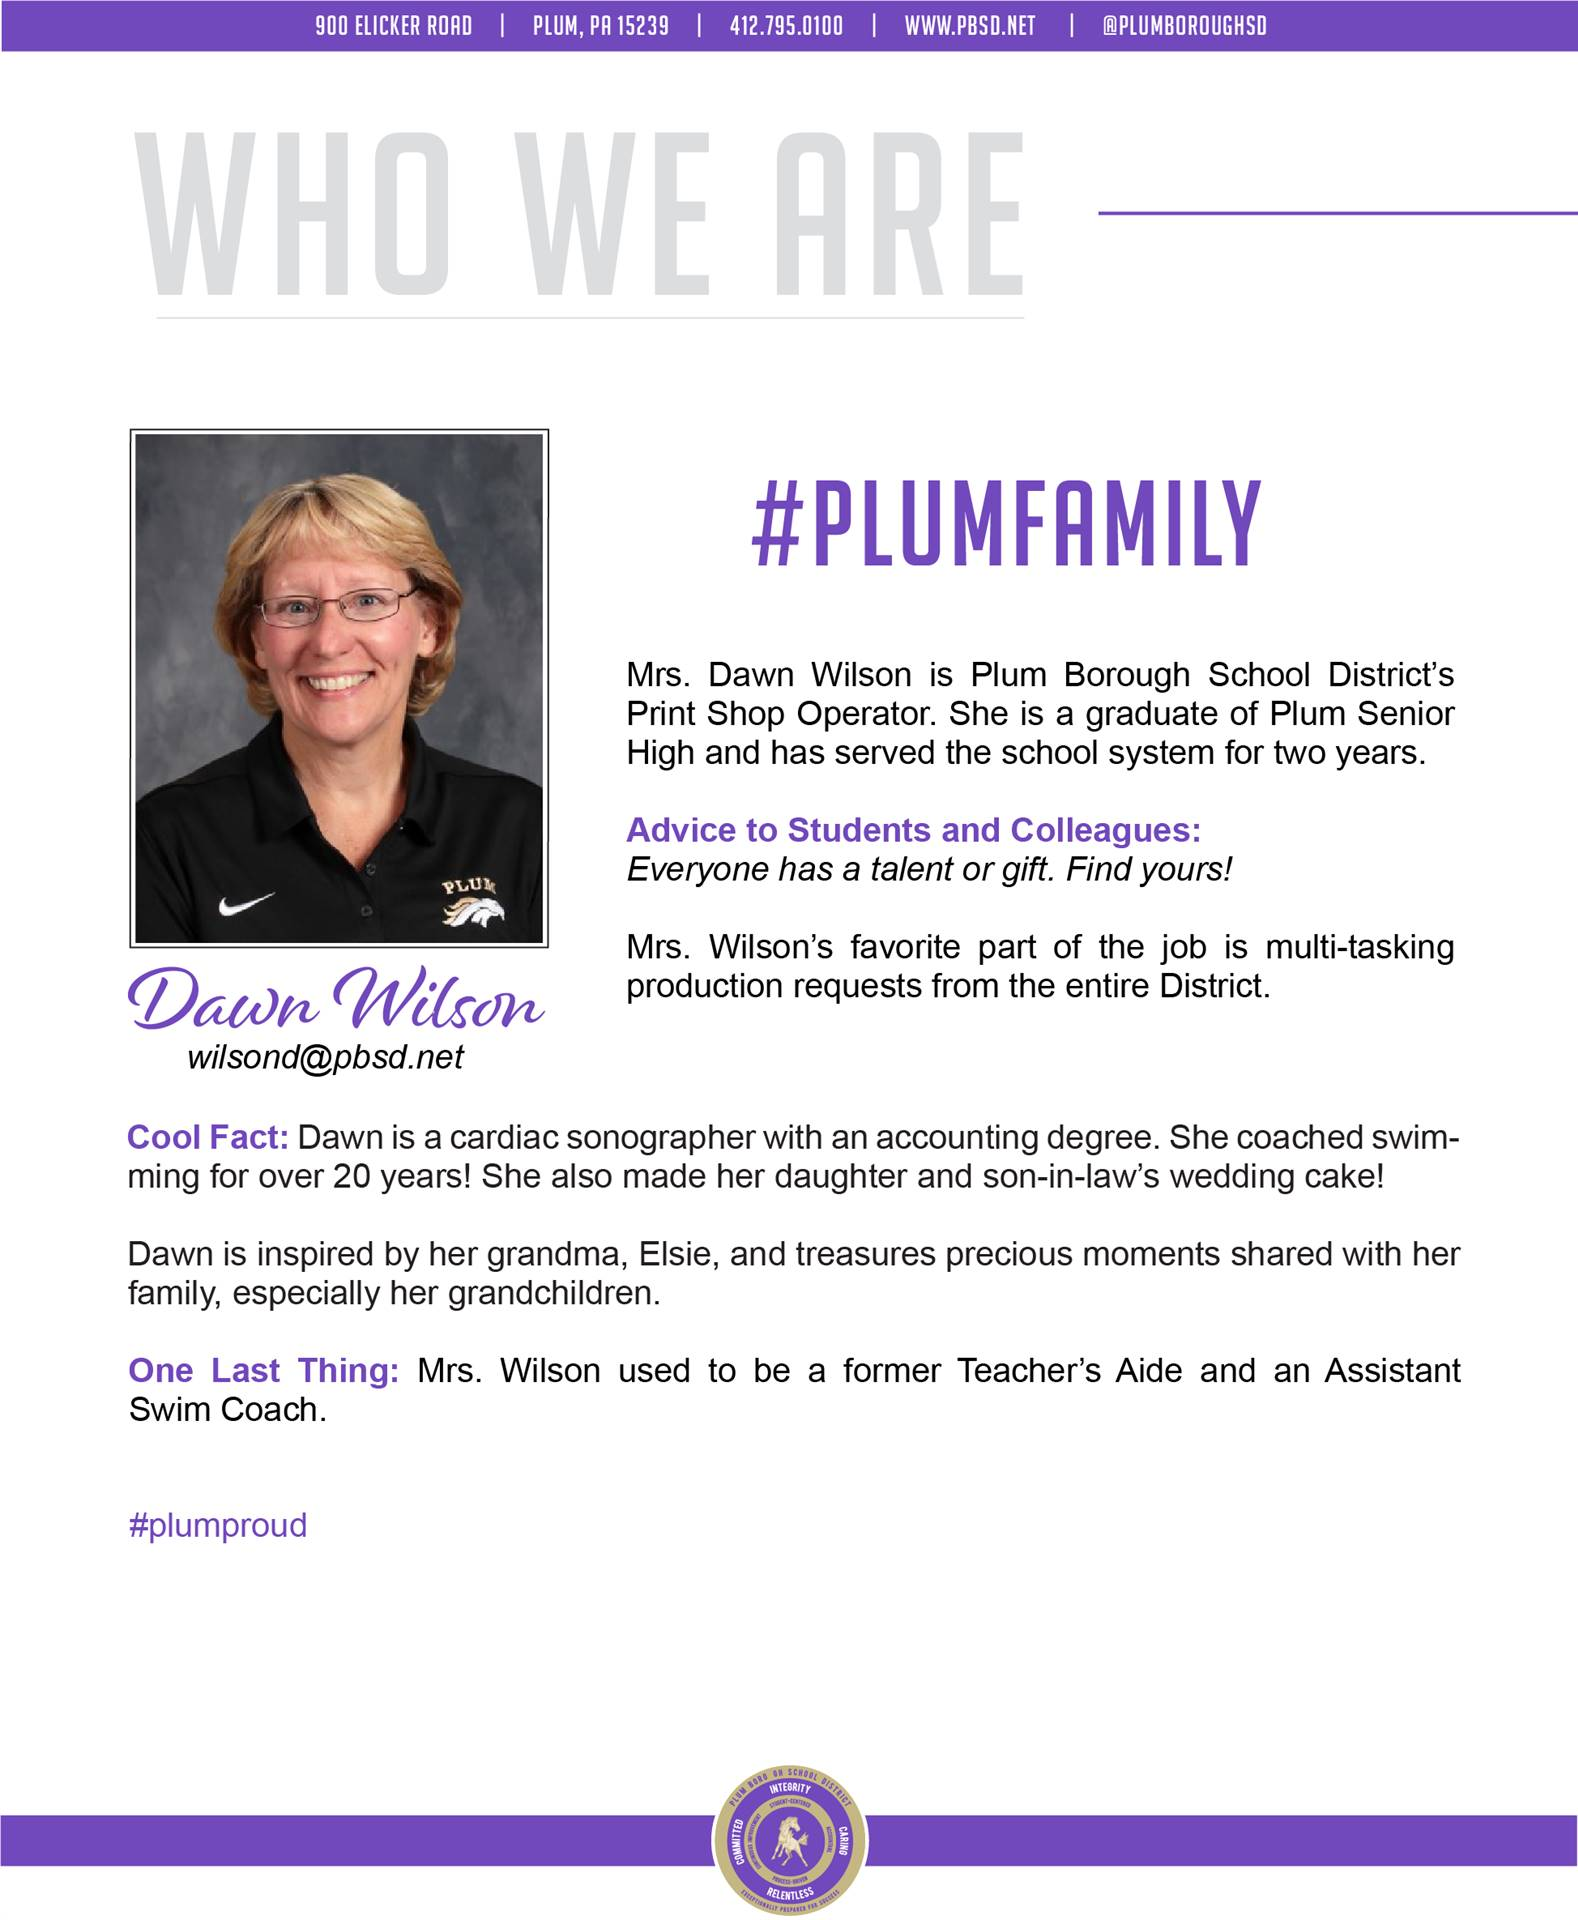 Who We Are Wednesday features Dawn Wilson.